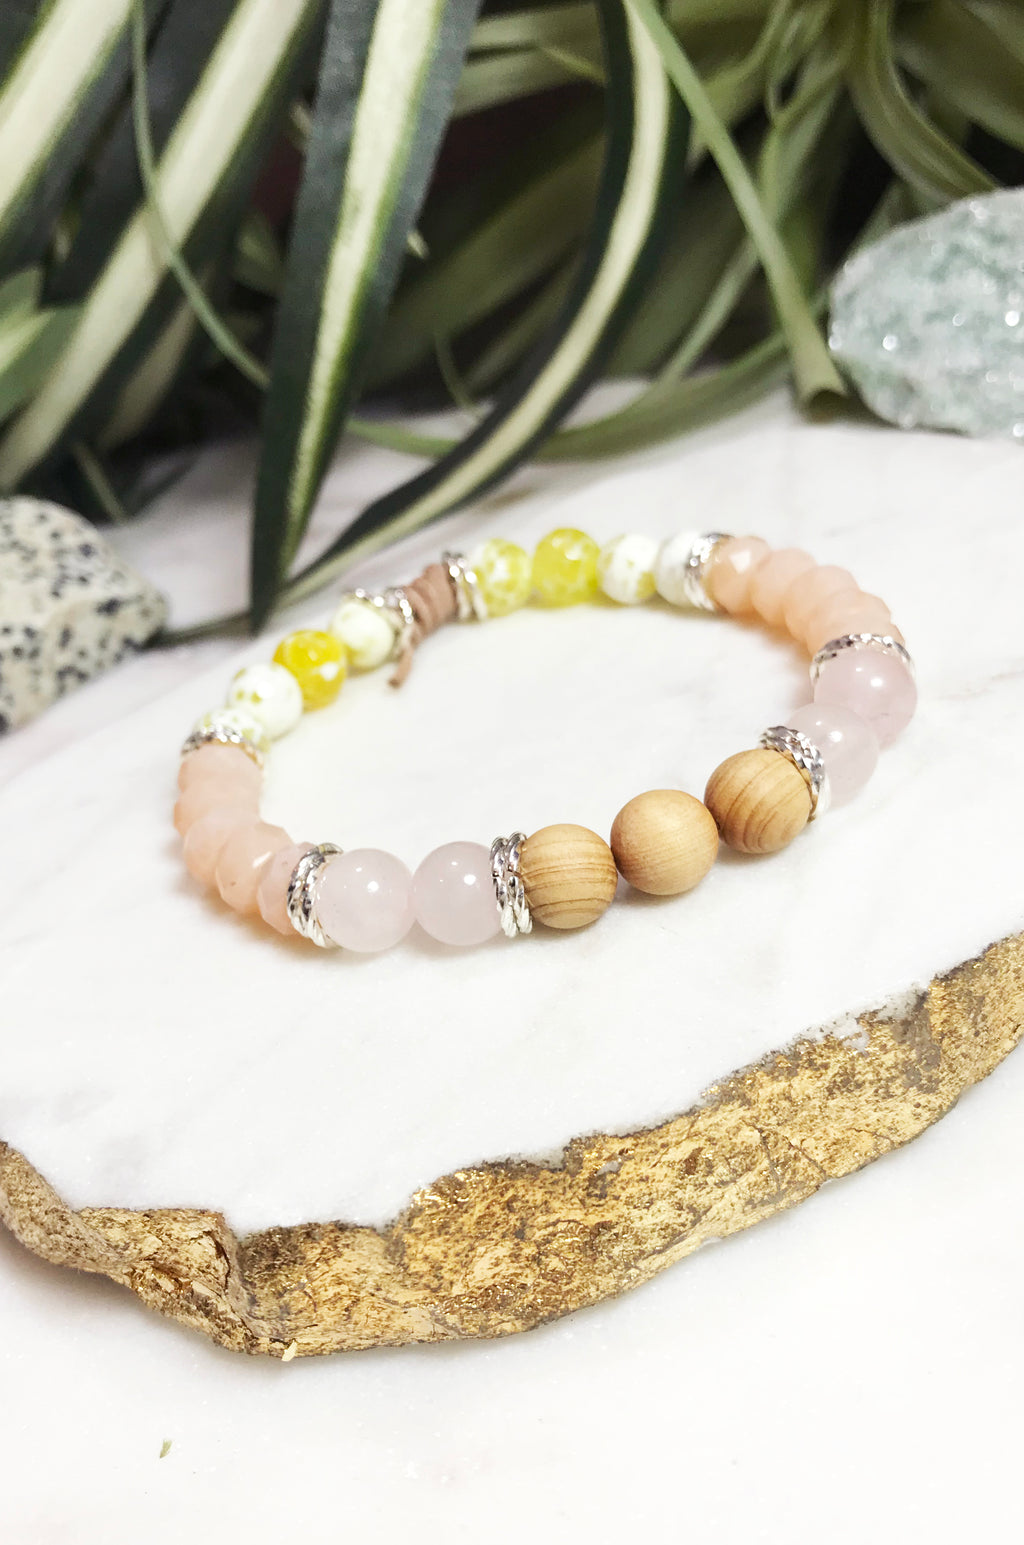 therapy bracelet - TH-018-BR